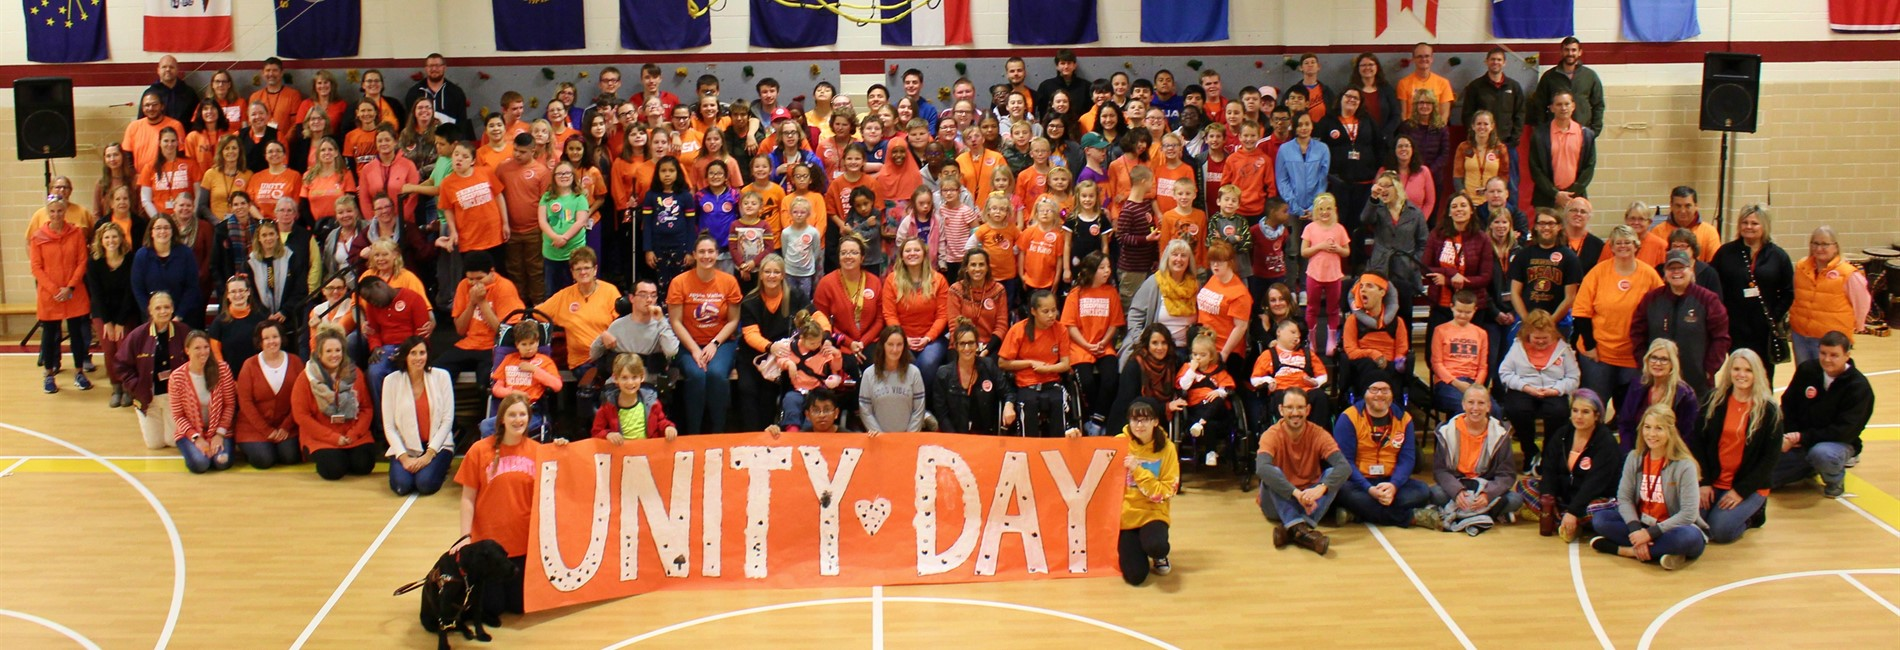 Students and staff posing for a large group picture for Unity Day. All are wearing orange and are standing in the MSAB gymnasium.